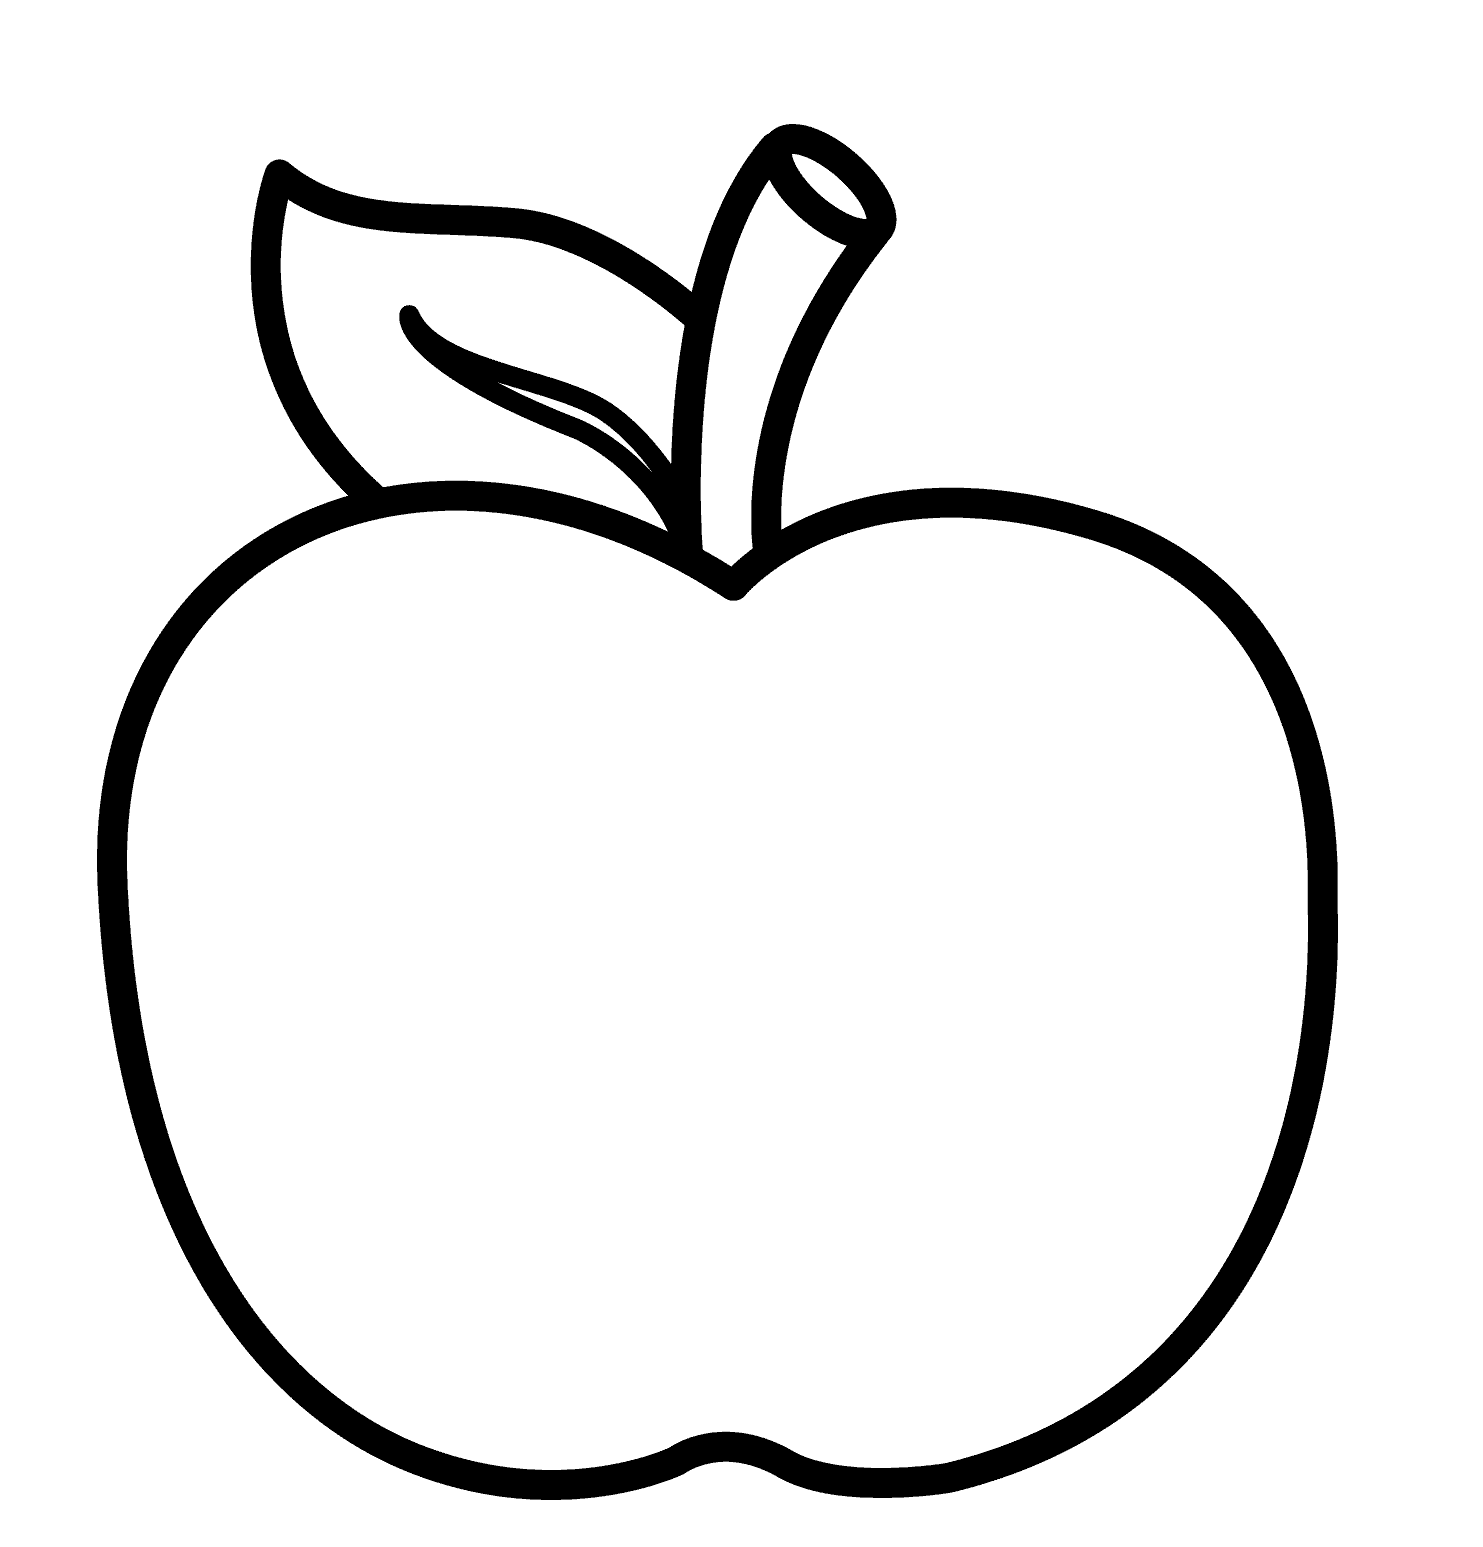 apple dumplin coloring page free printable coloring pages - HD 1151×1280